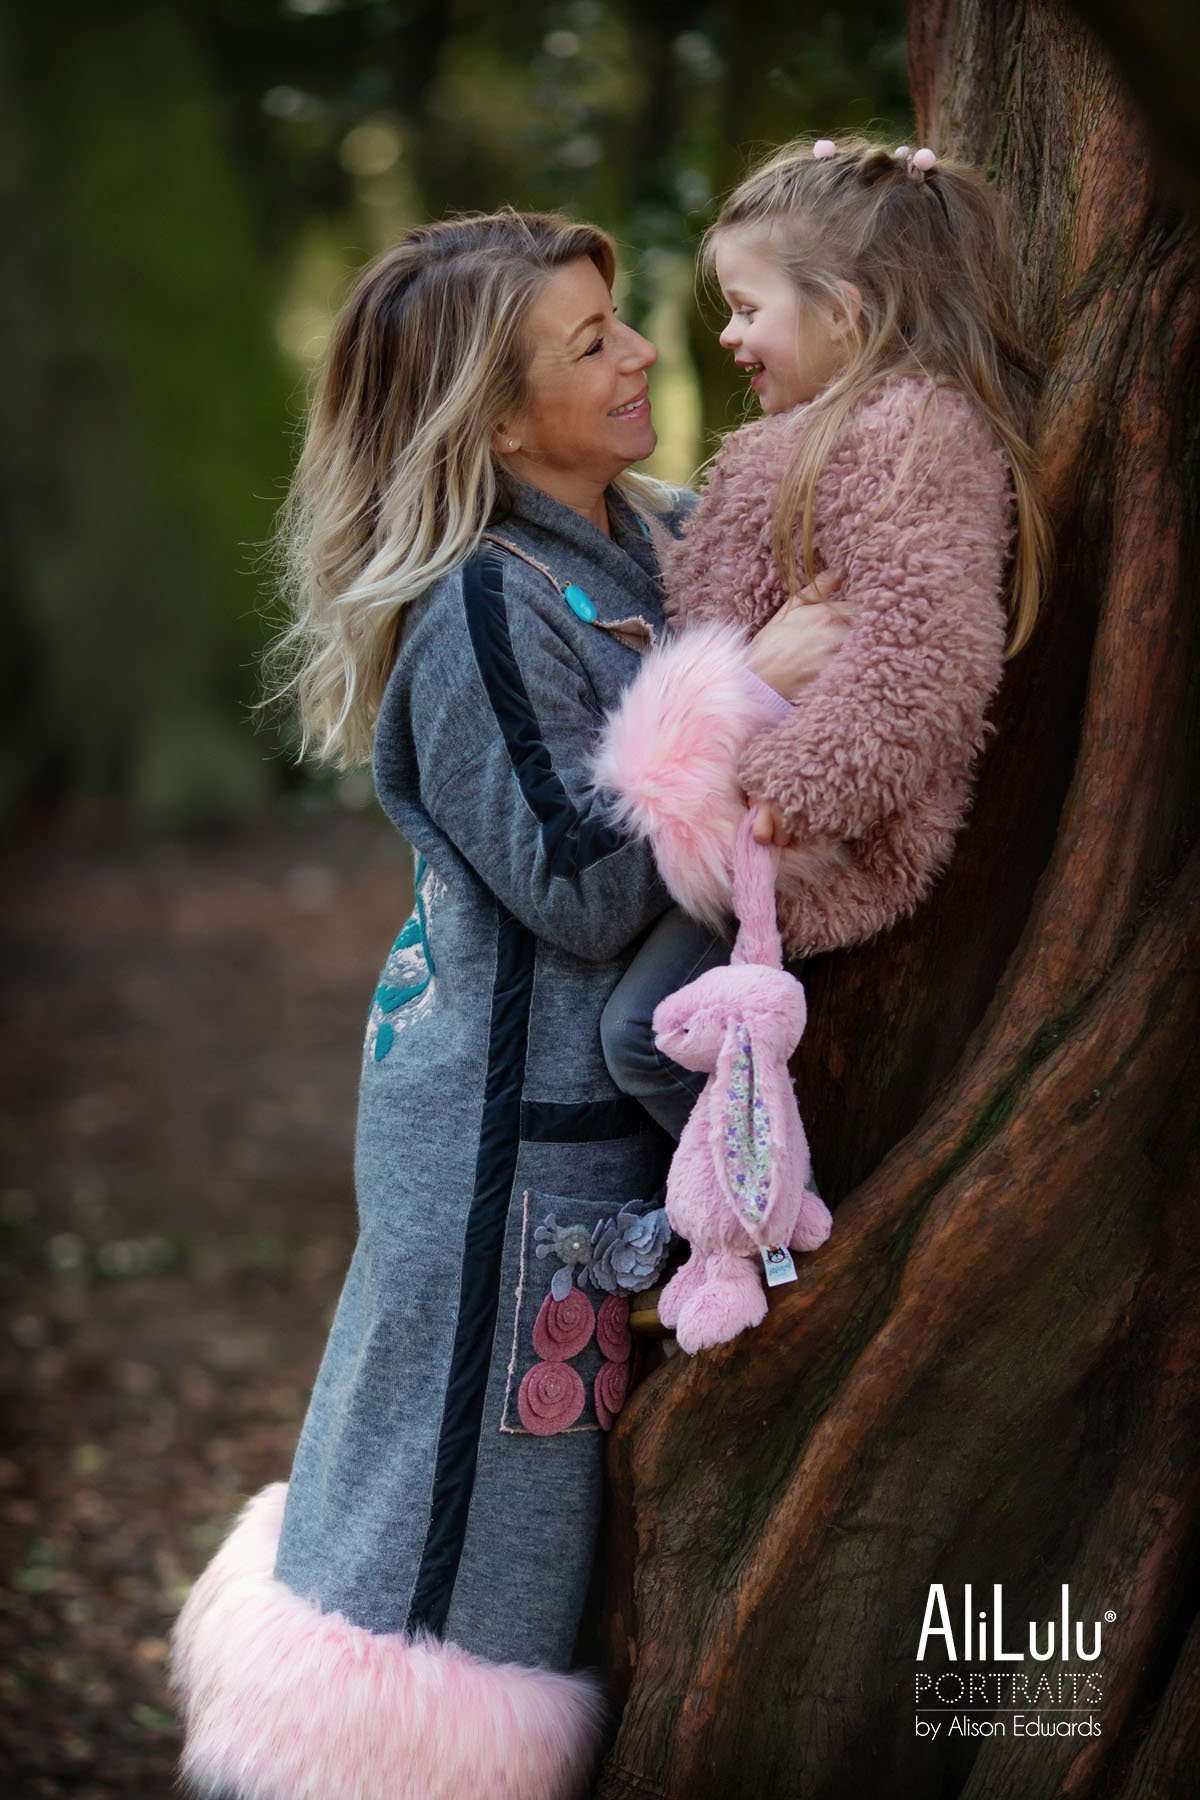 mummy and young daughter smiling in park